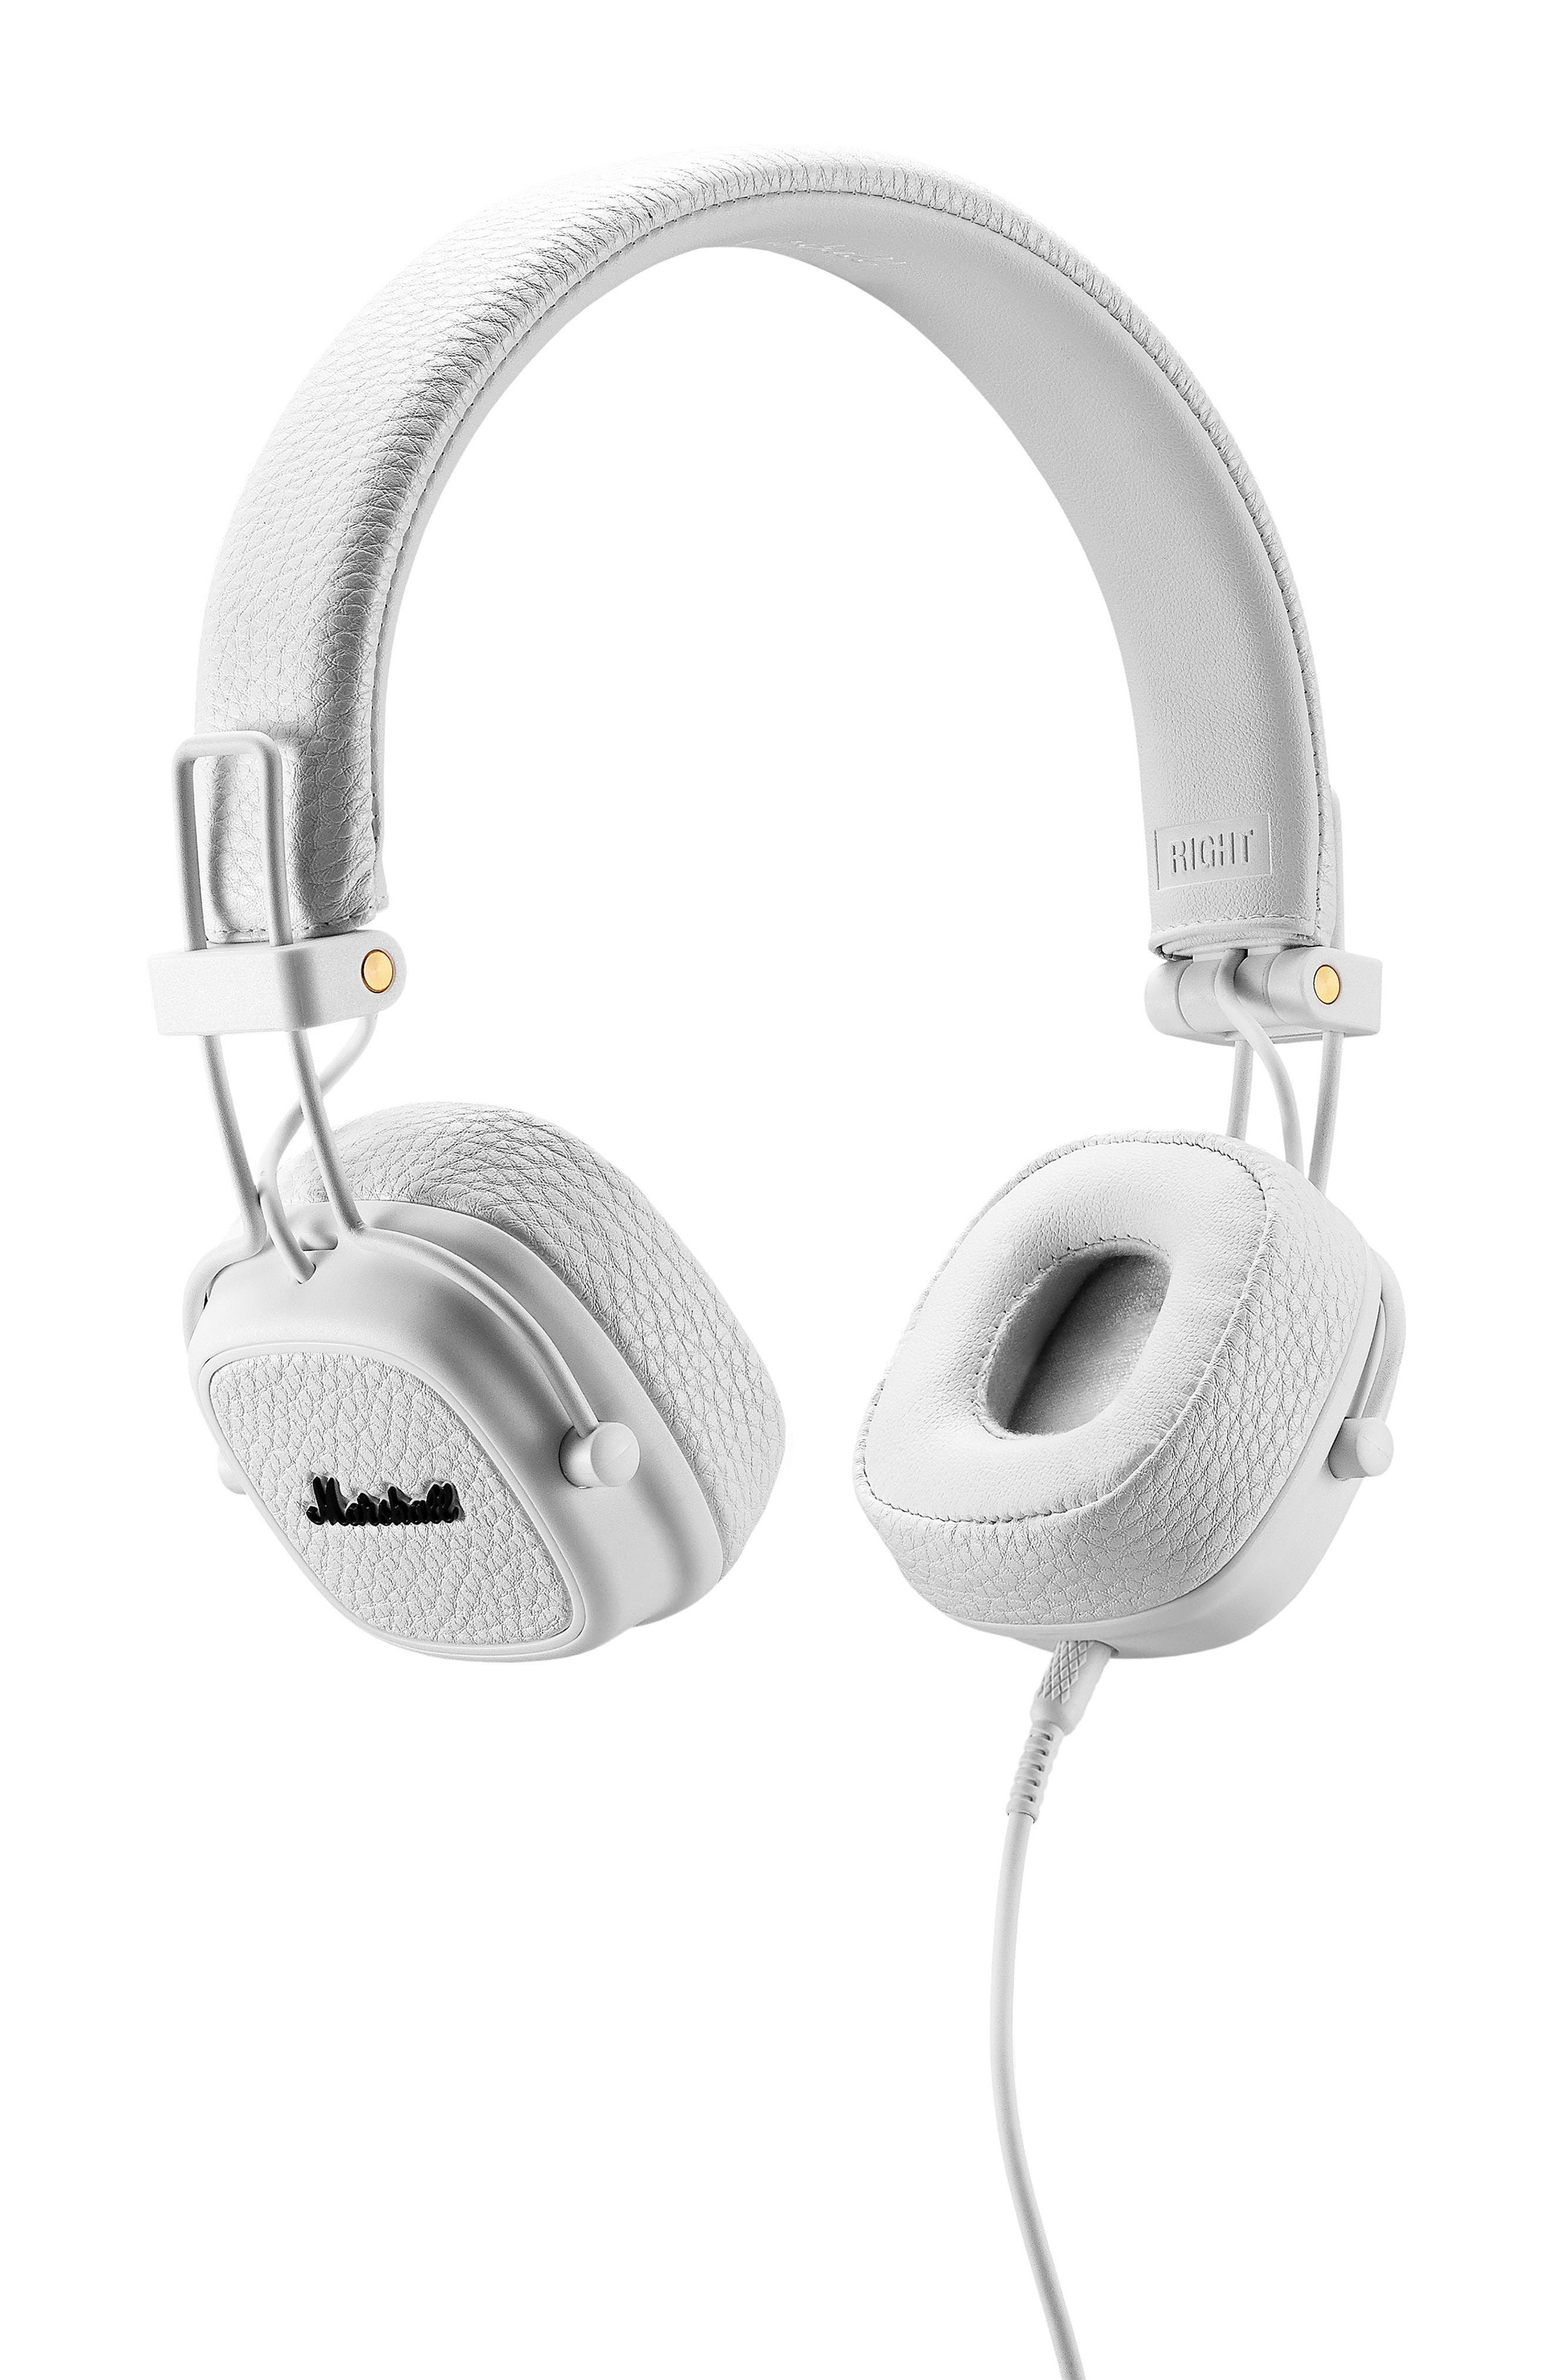 Engineered to produce an enhanced listening experience, wired headphones feature an extra socket to share your sound, as well as a one-button remote. Style Name: Marshall Major Iii Wired Headphones. Style Number: 5707154. Available in stores.